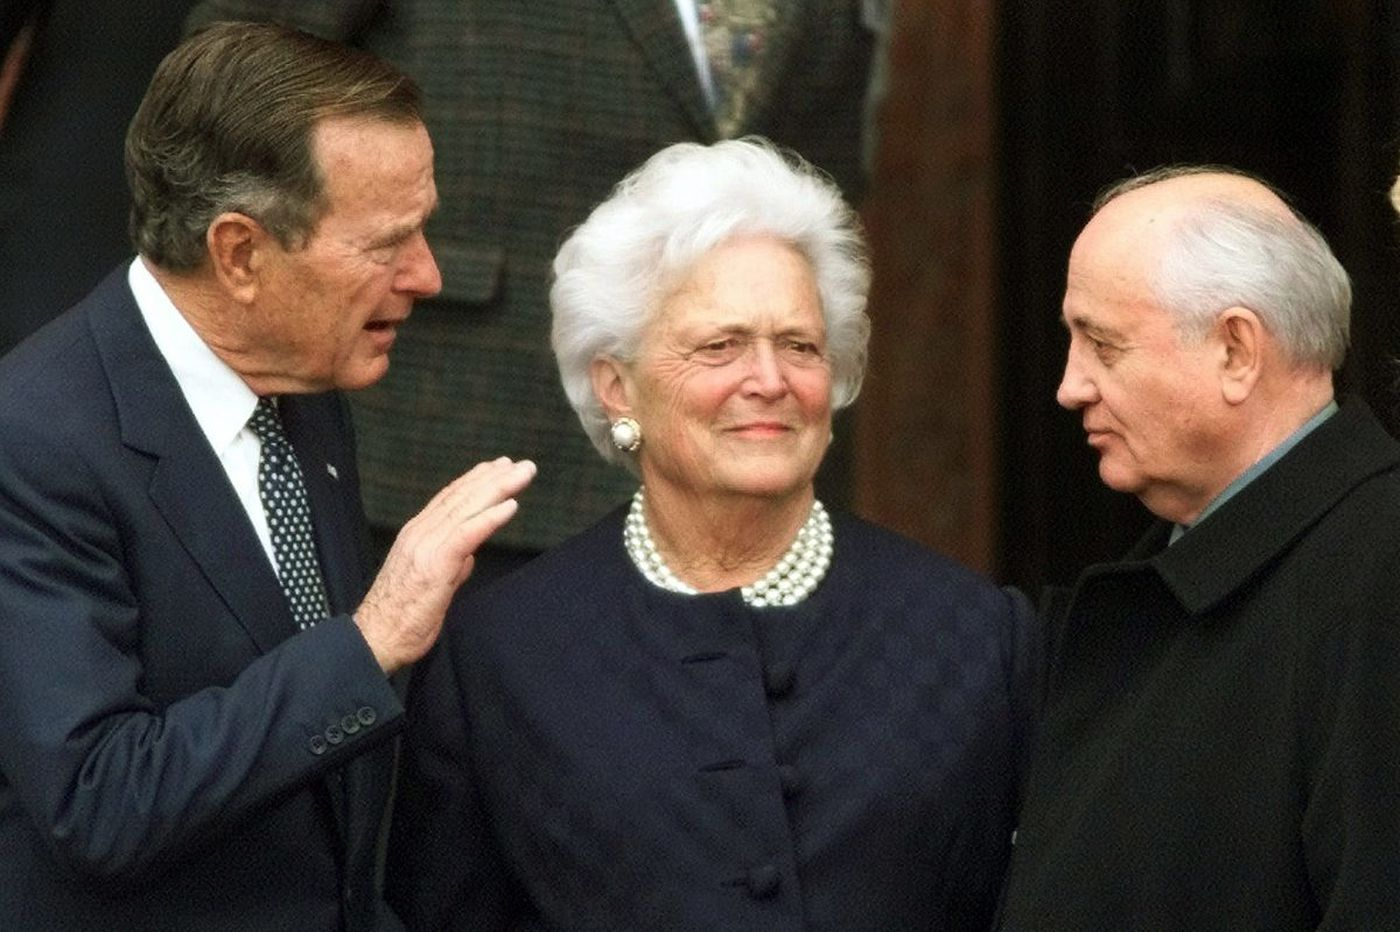 Barbara Bush and the problem with 'comfort care'